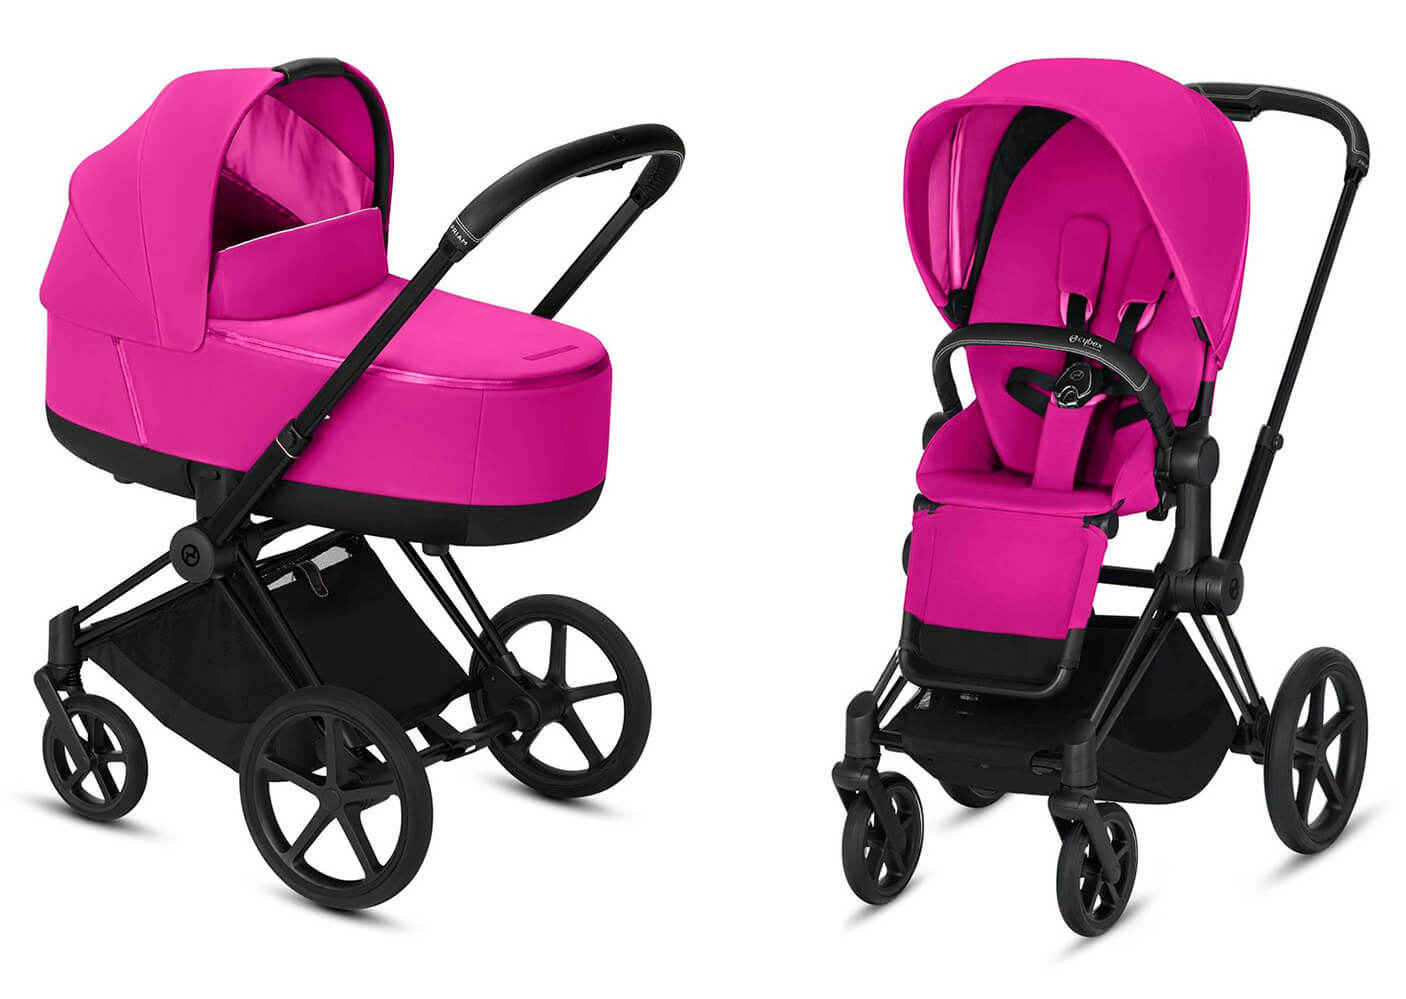 Цвета Cybex Priam 2 в 1 Детская коляска Cybex Priam III 2 в 1 Fancy Pink шасси Matt Black cybex-priam-iii-2-in-1-fancy-pink-matt-black.jpg